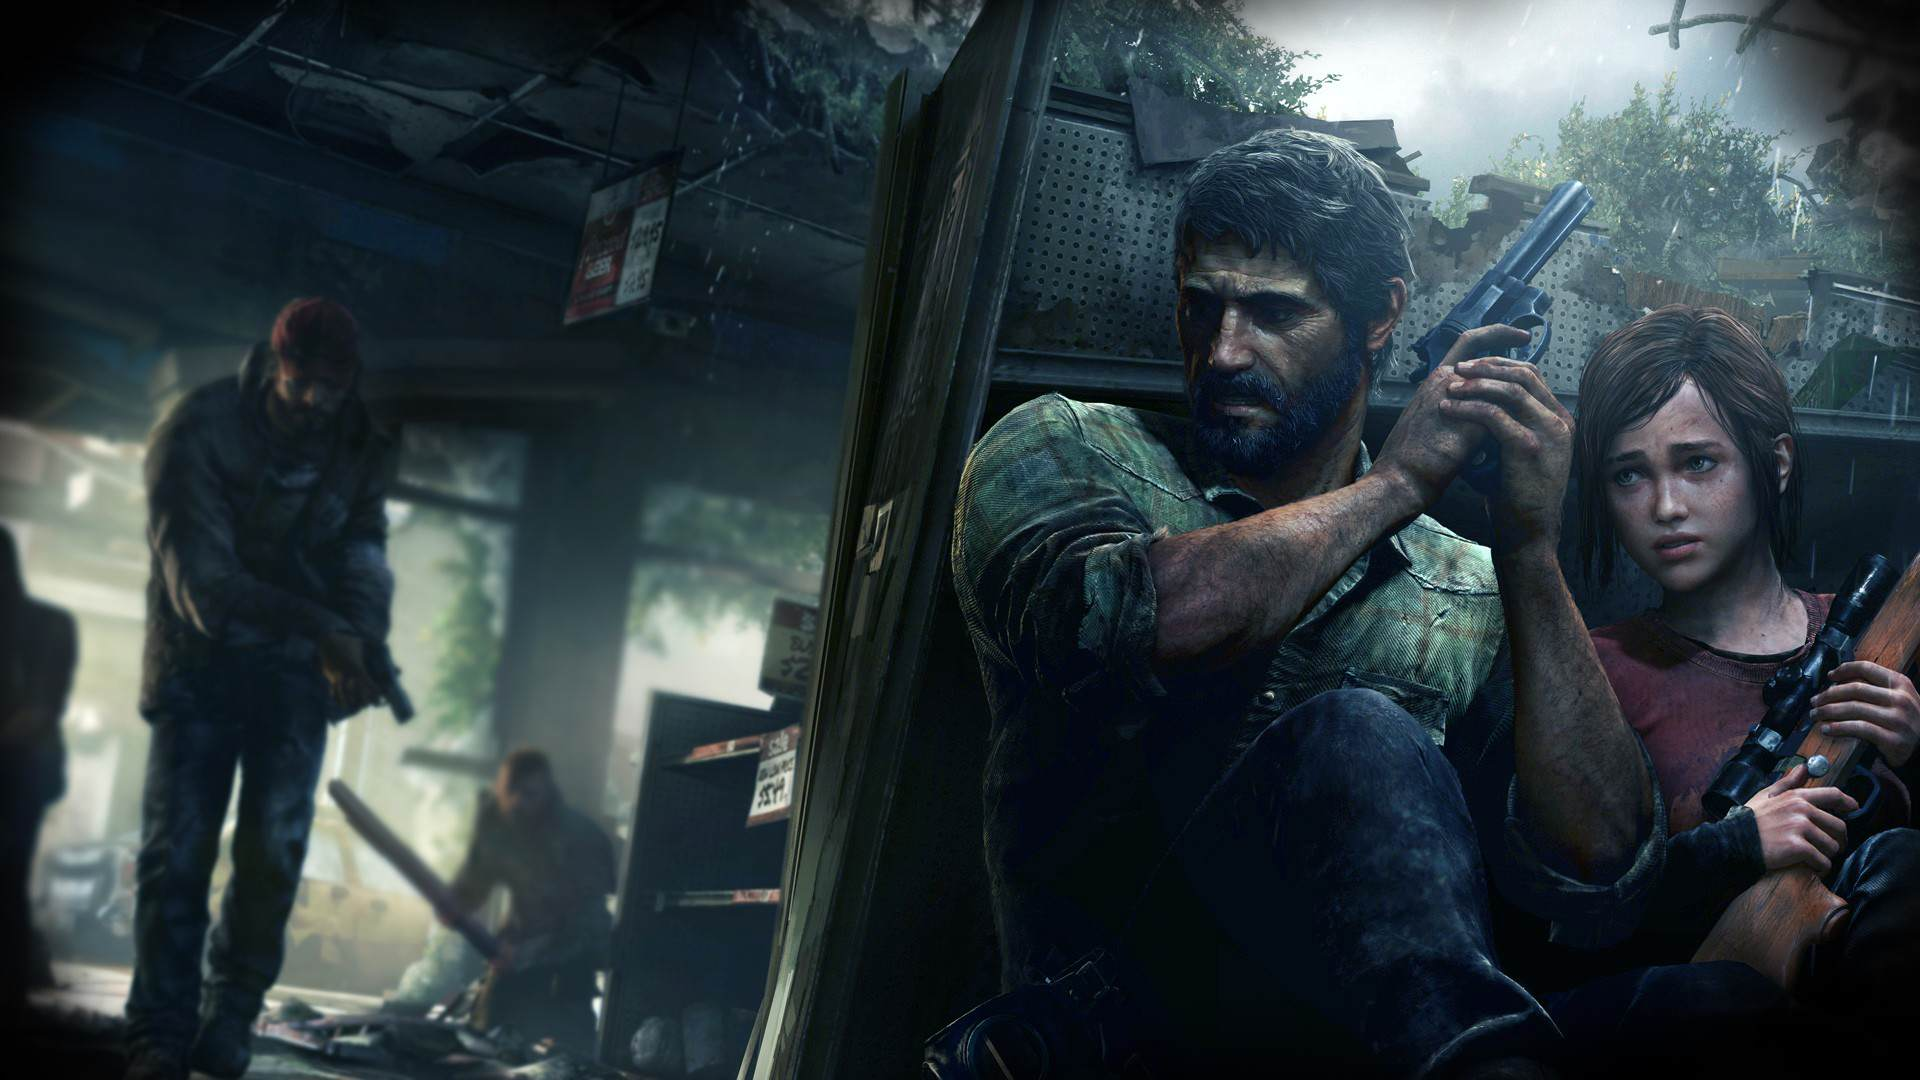 Work On The Last Of Us 2 May Start Soon whsa0lrdy41we0eyhh6m 1